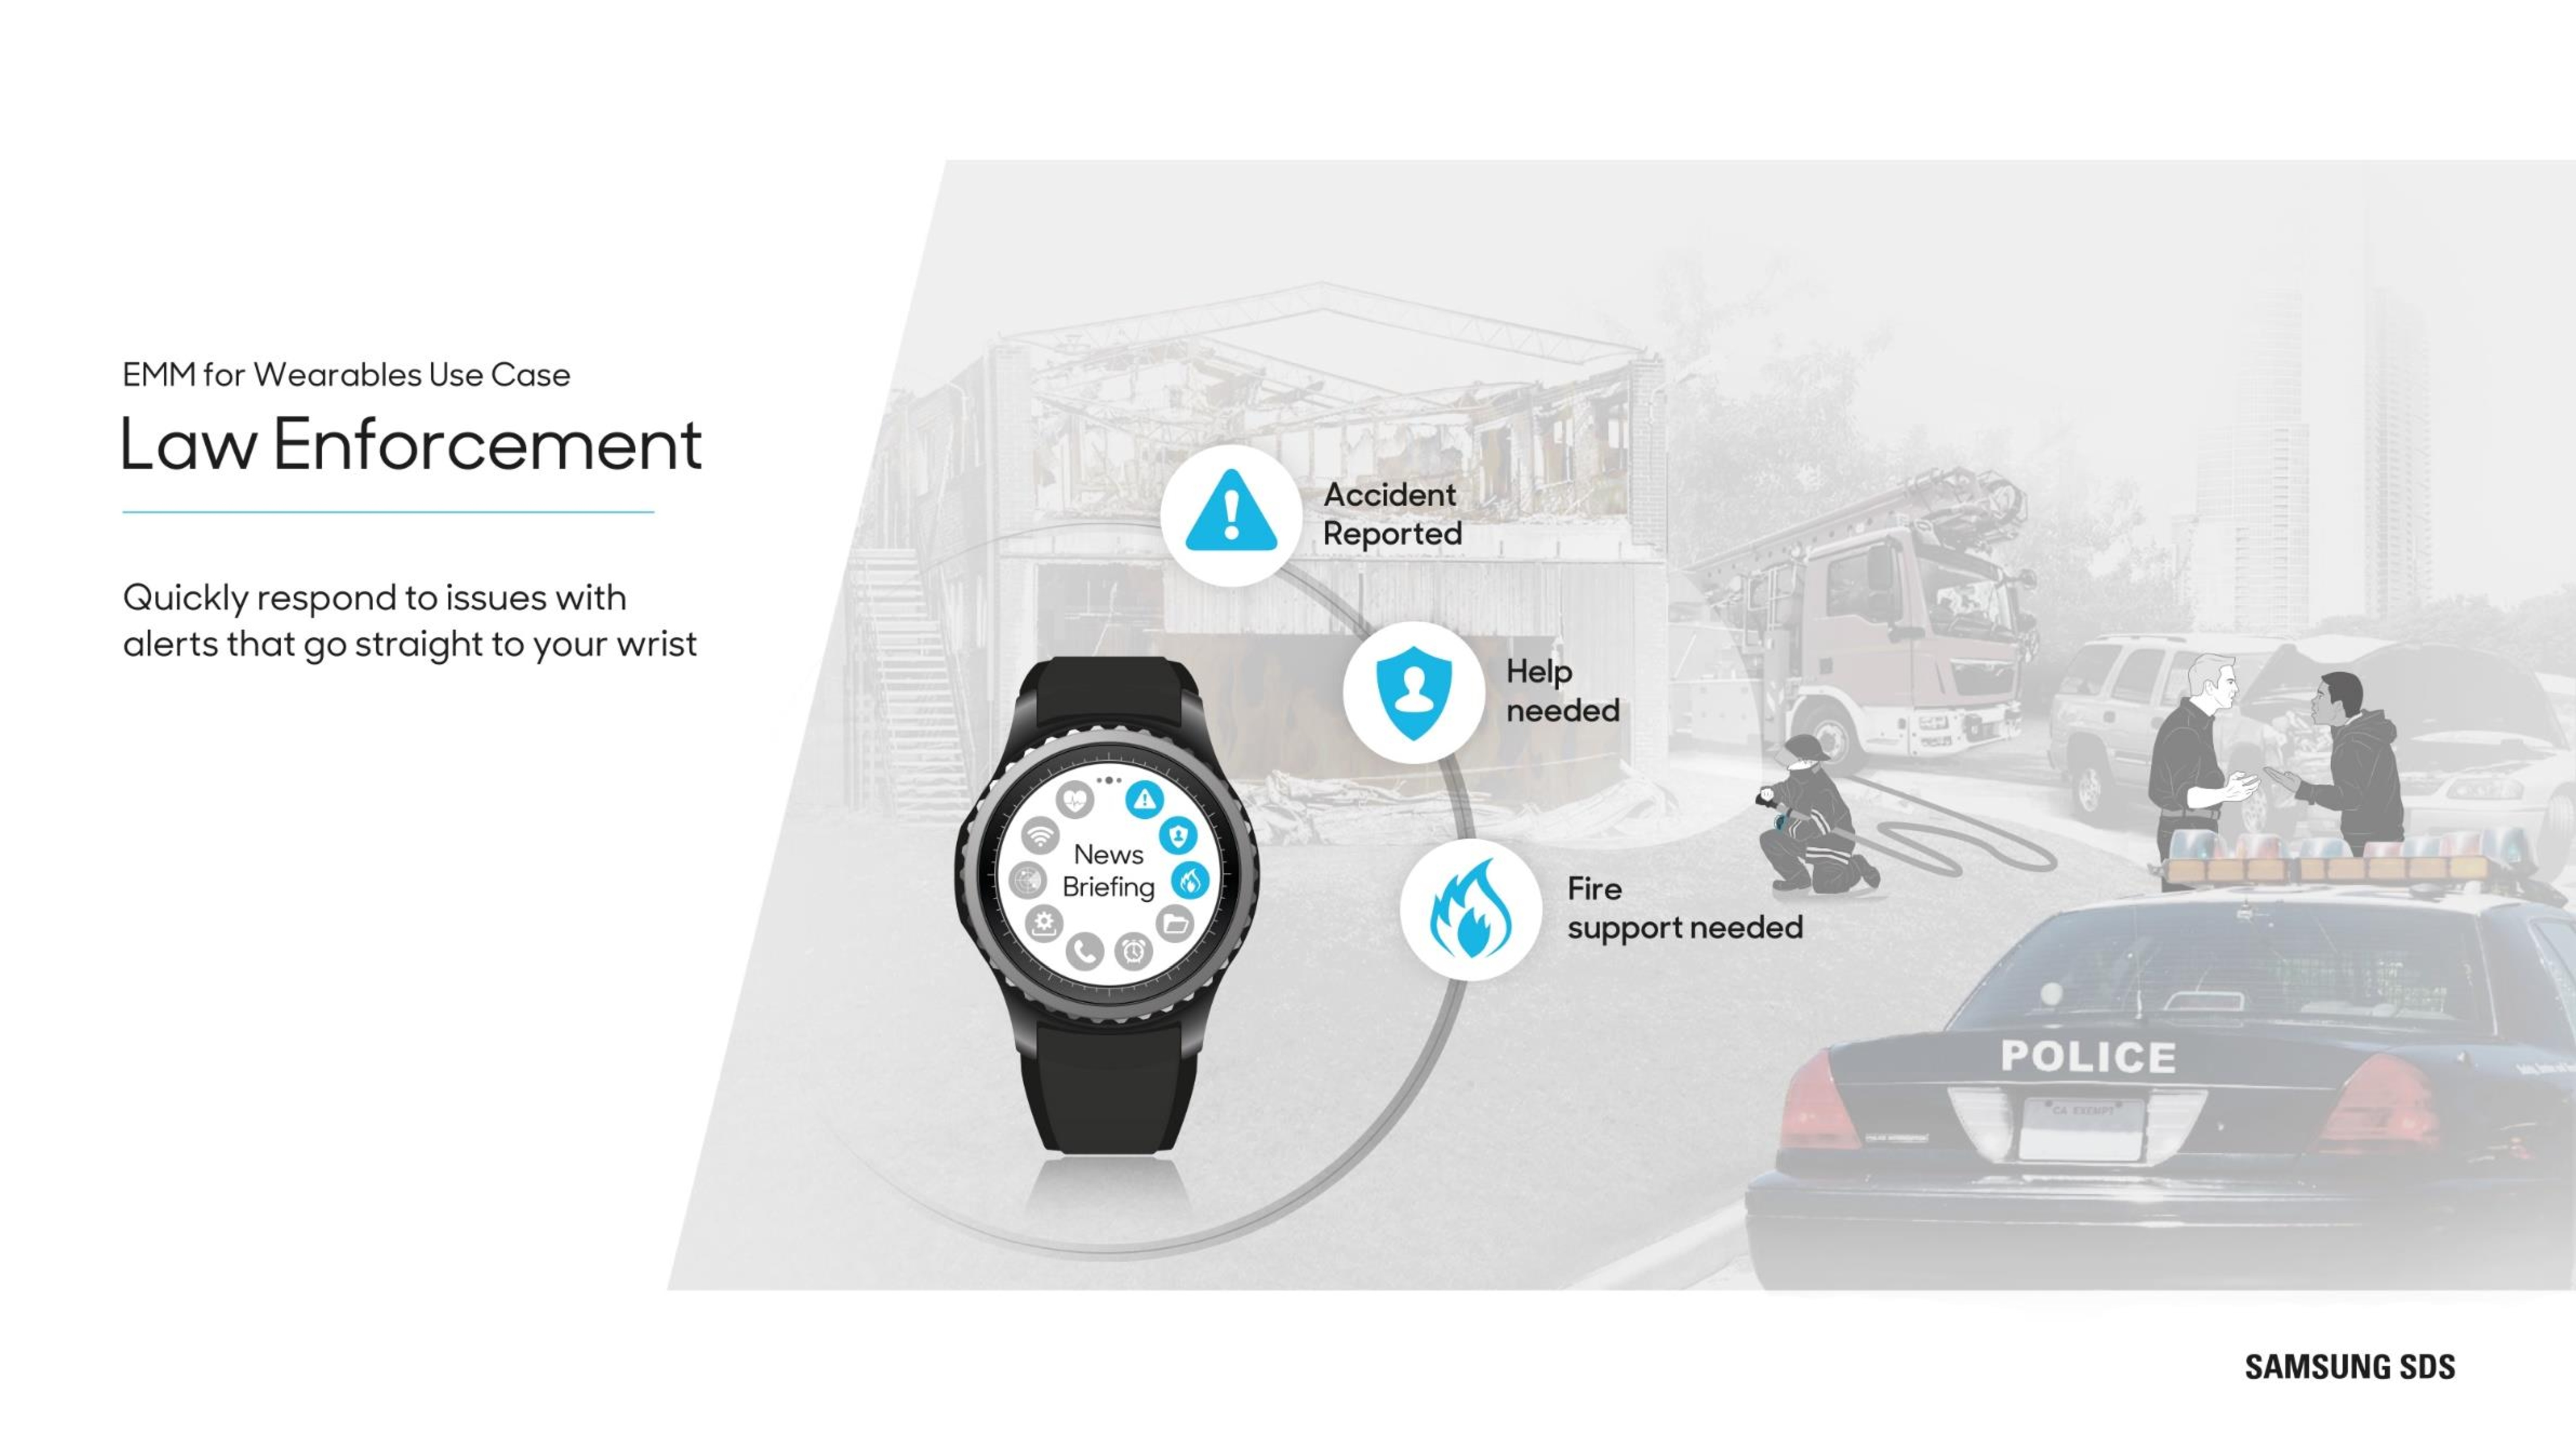 Wearables in government Quickly respond to issues with alerts that go straights to your wrist